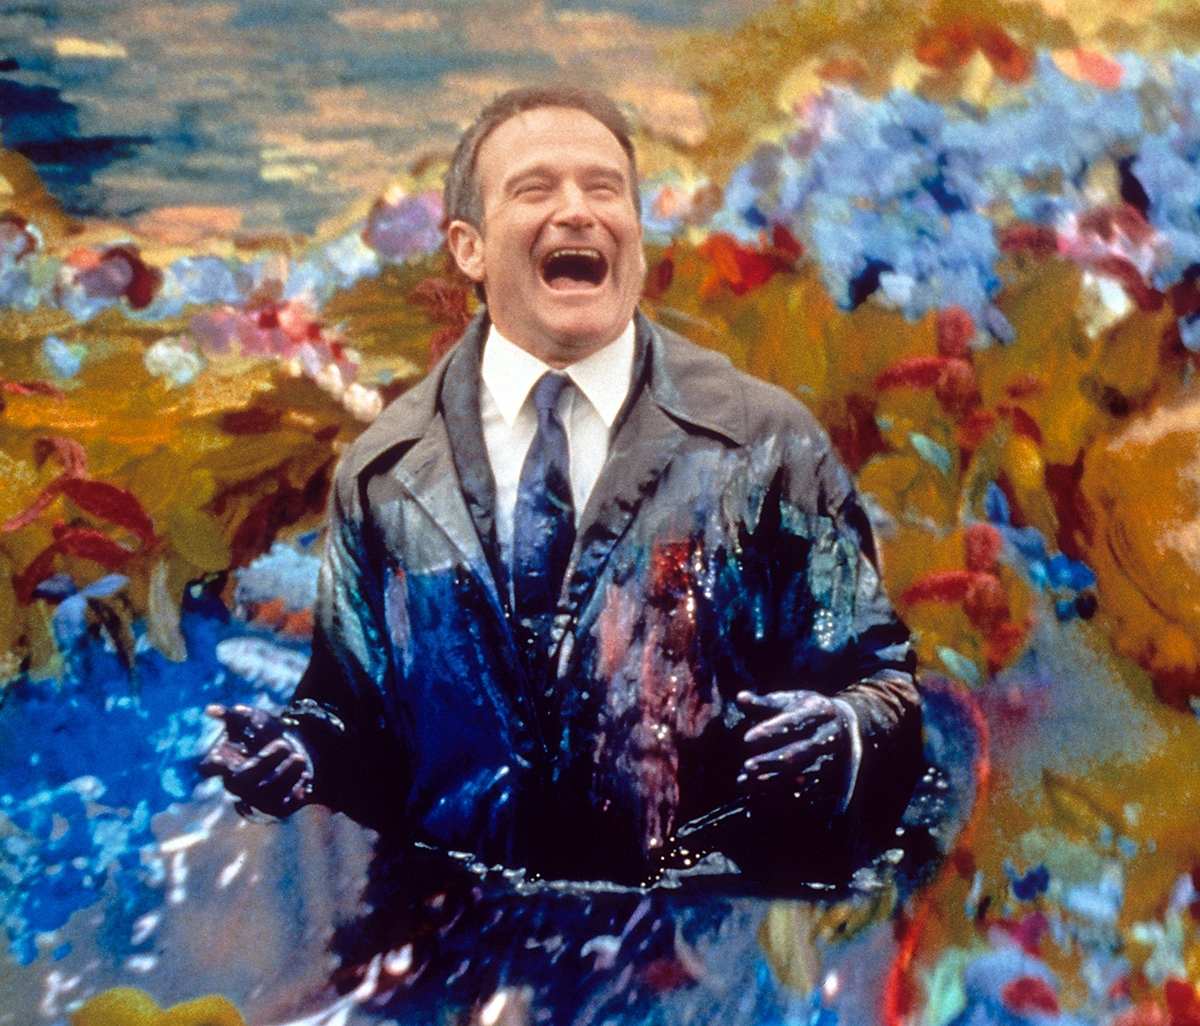 Robin Williams' Most Iconic Roles, From the Genie to Mrs. Doubtfire and More